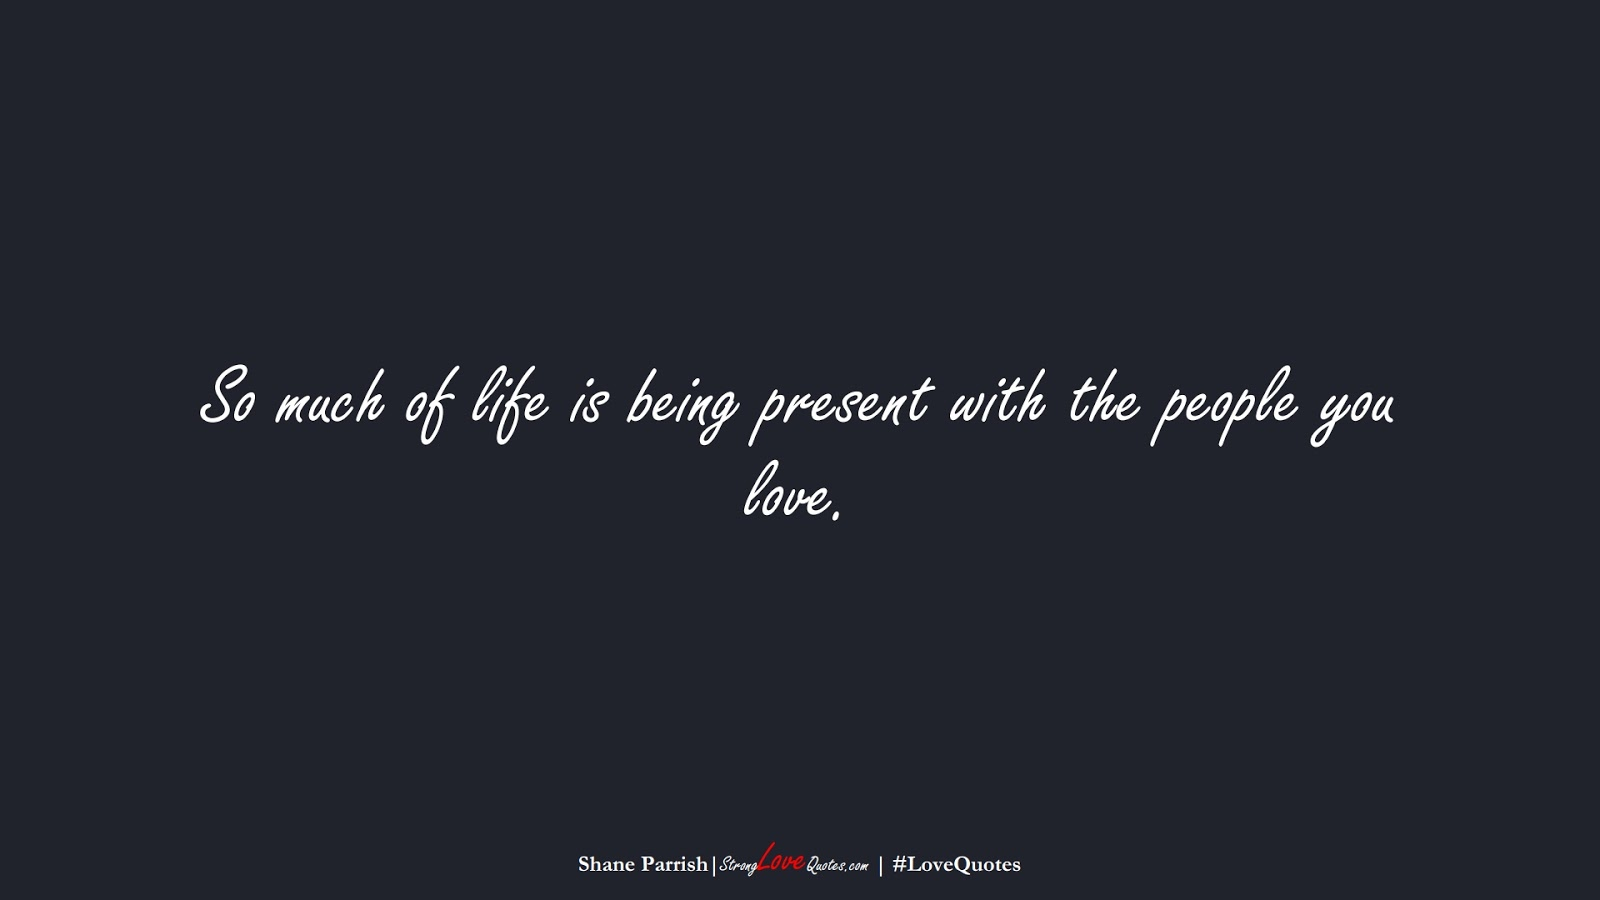 So much of life is being present with the people you love. (Shane Parrish);  #LoveQuotes